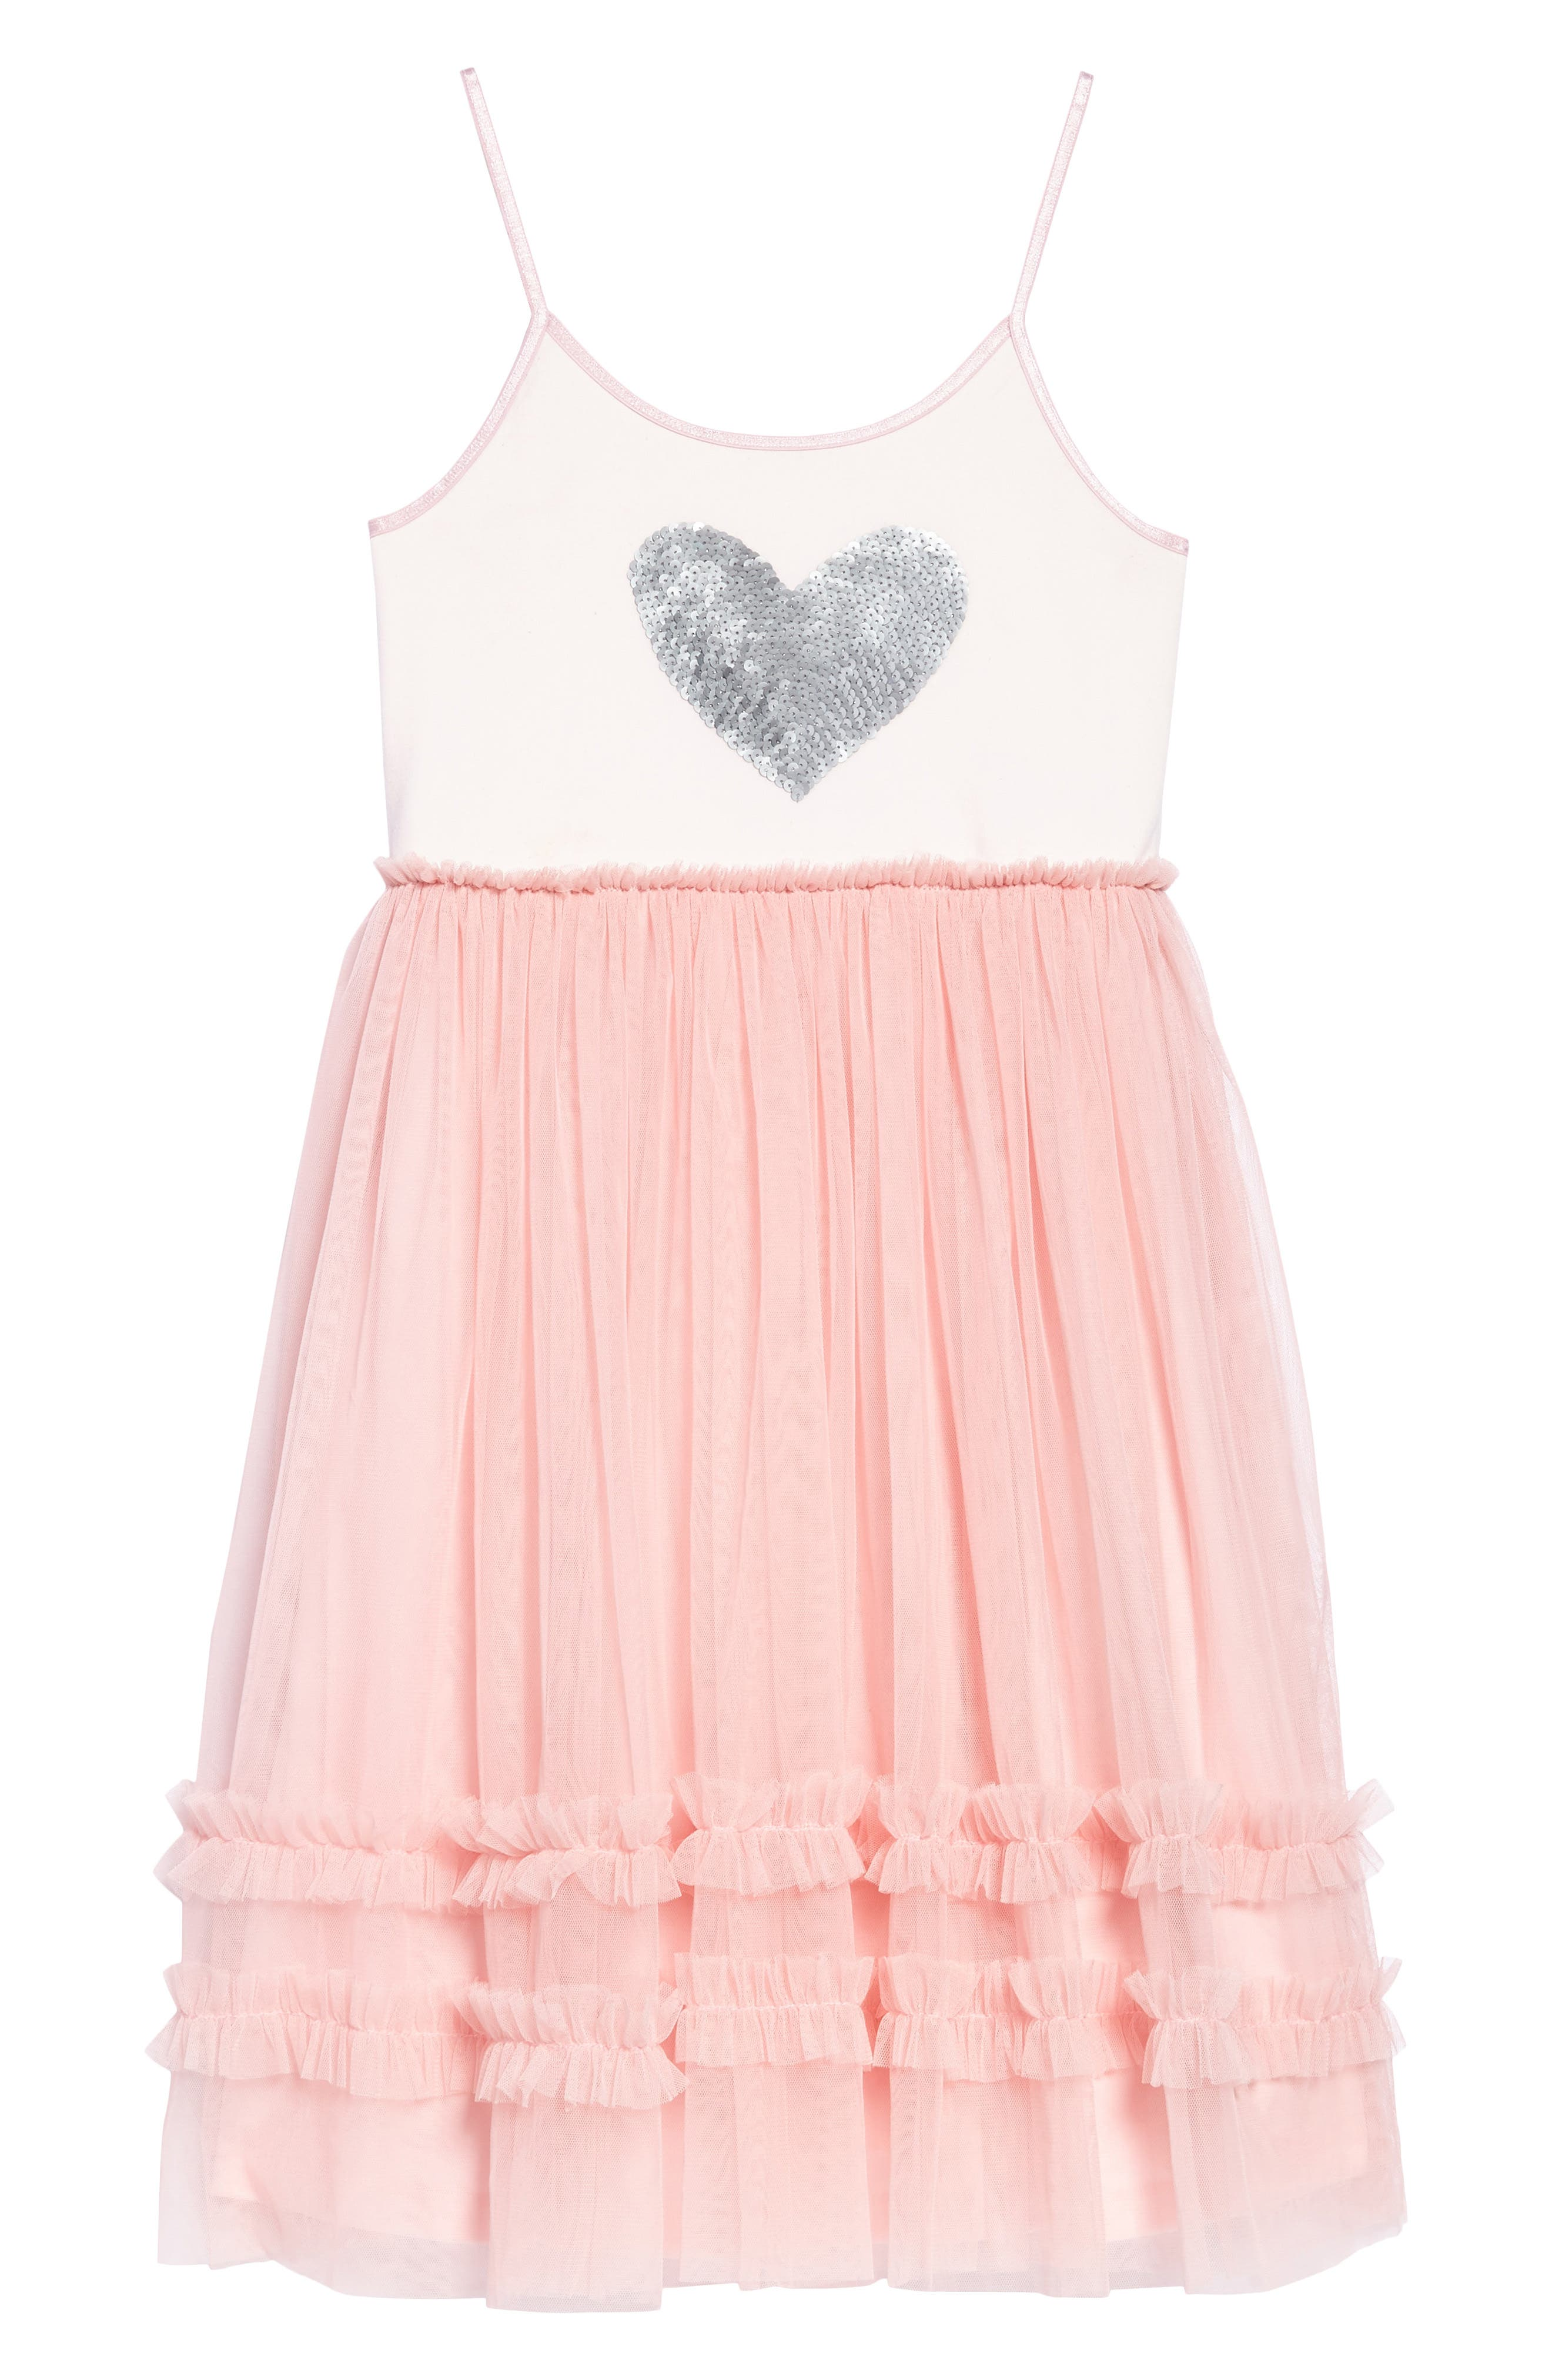 Sequin Heart Dress with Tulle Skirt,                             Main thumbnail 1, color,                             650